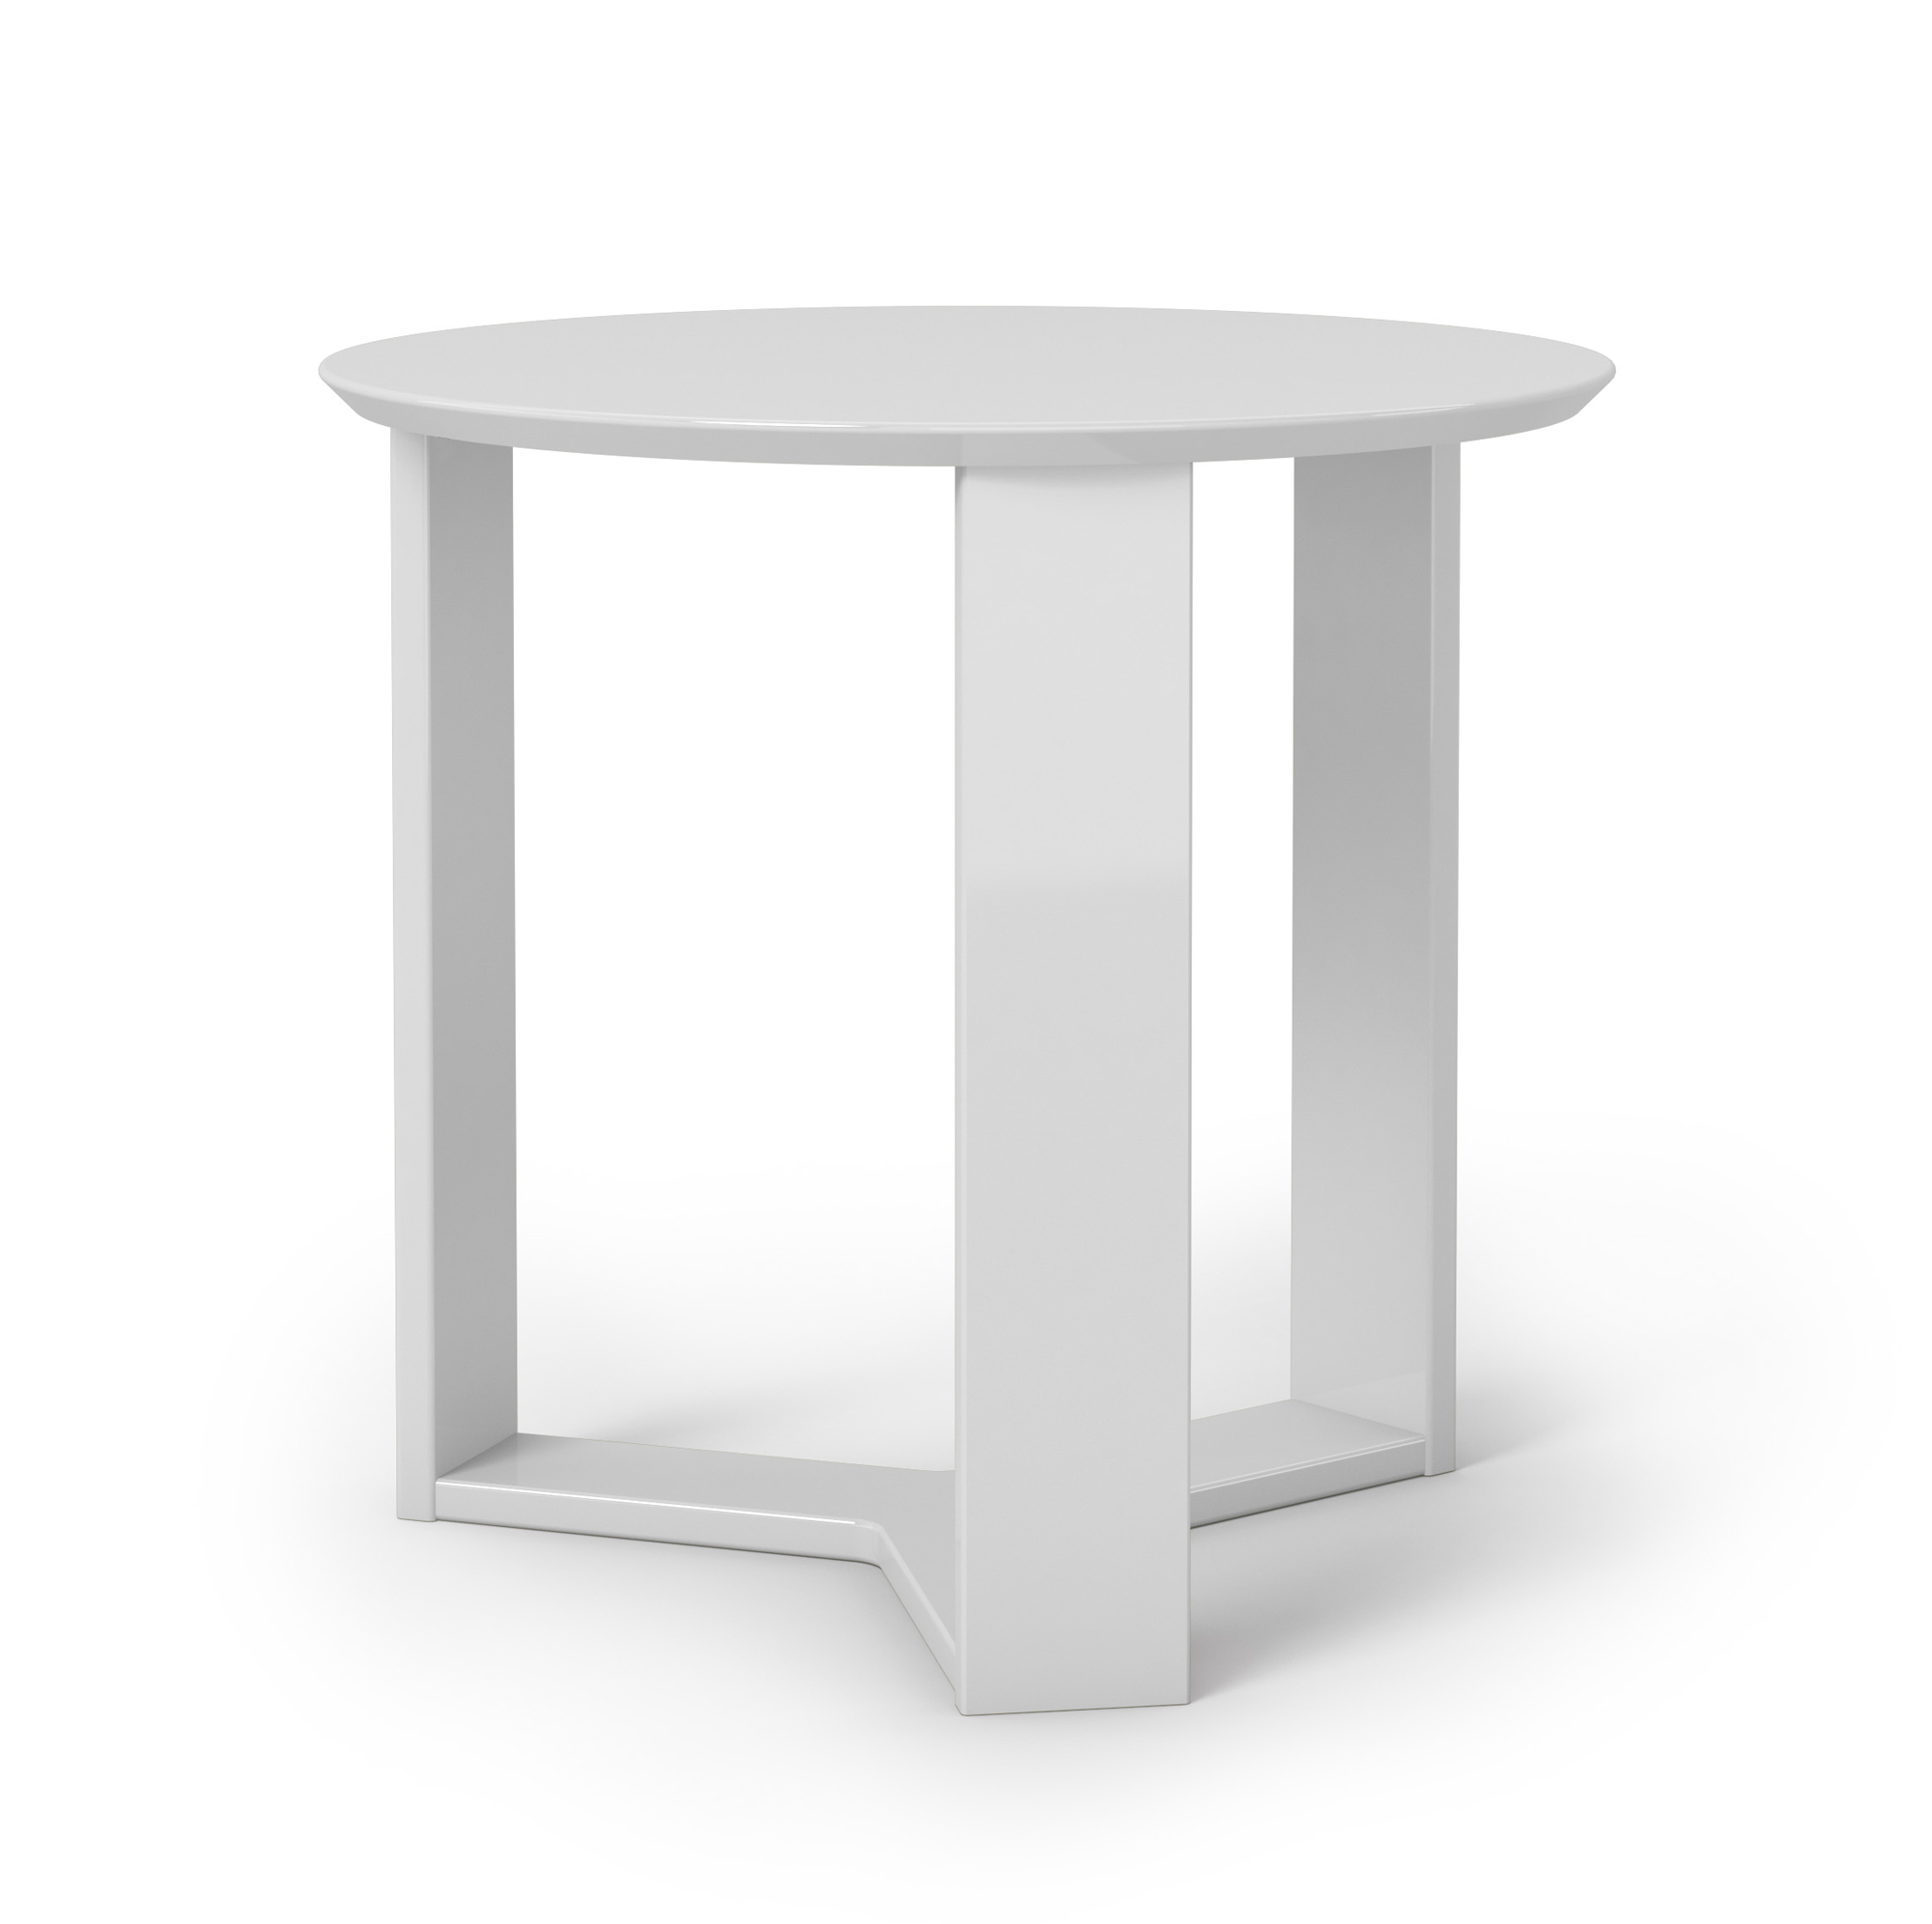 madison white gloss round accent end table glass lamp wood threshold small bedside lamps large silver wall clock inexpensive tables aluminium garden furniture runner dining room